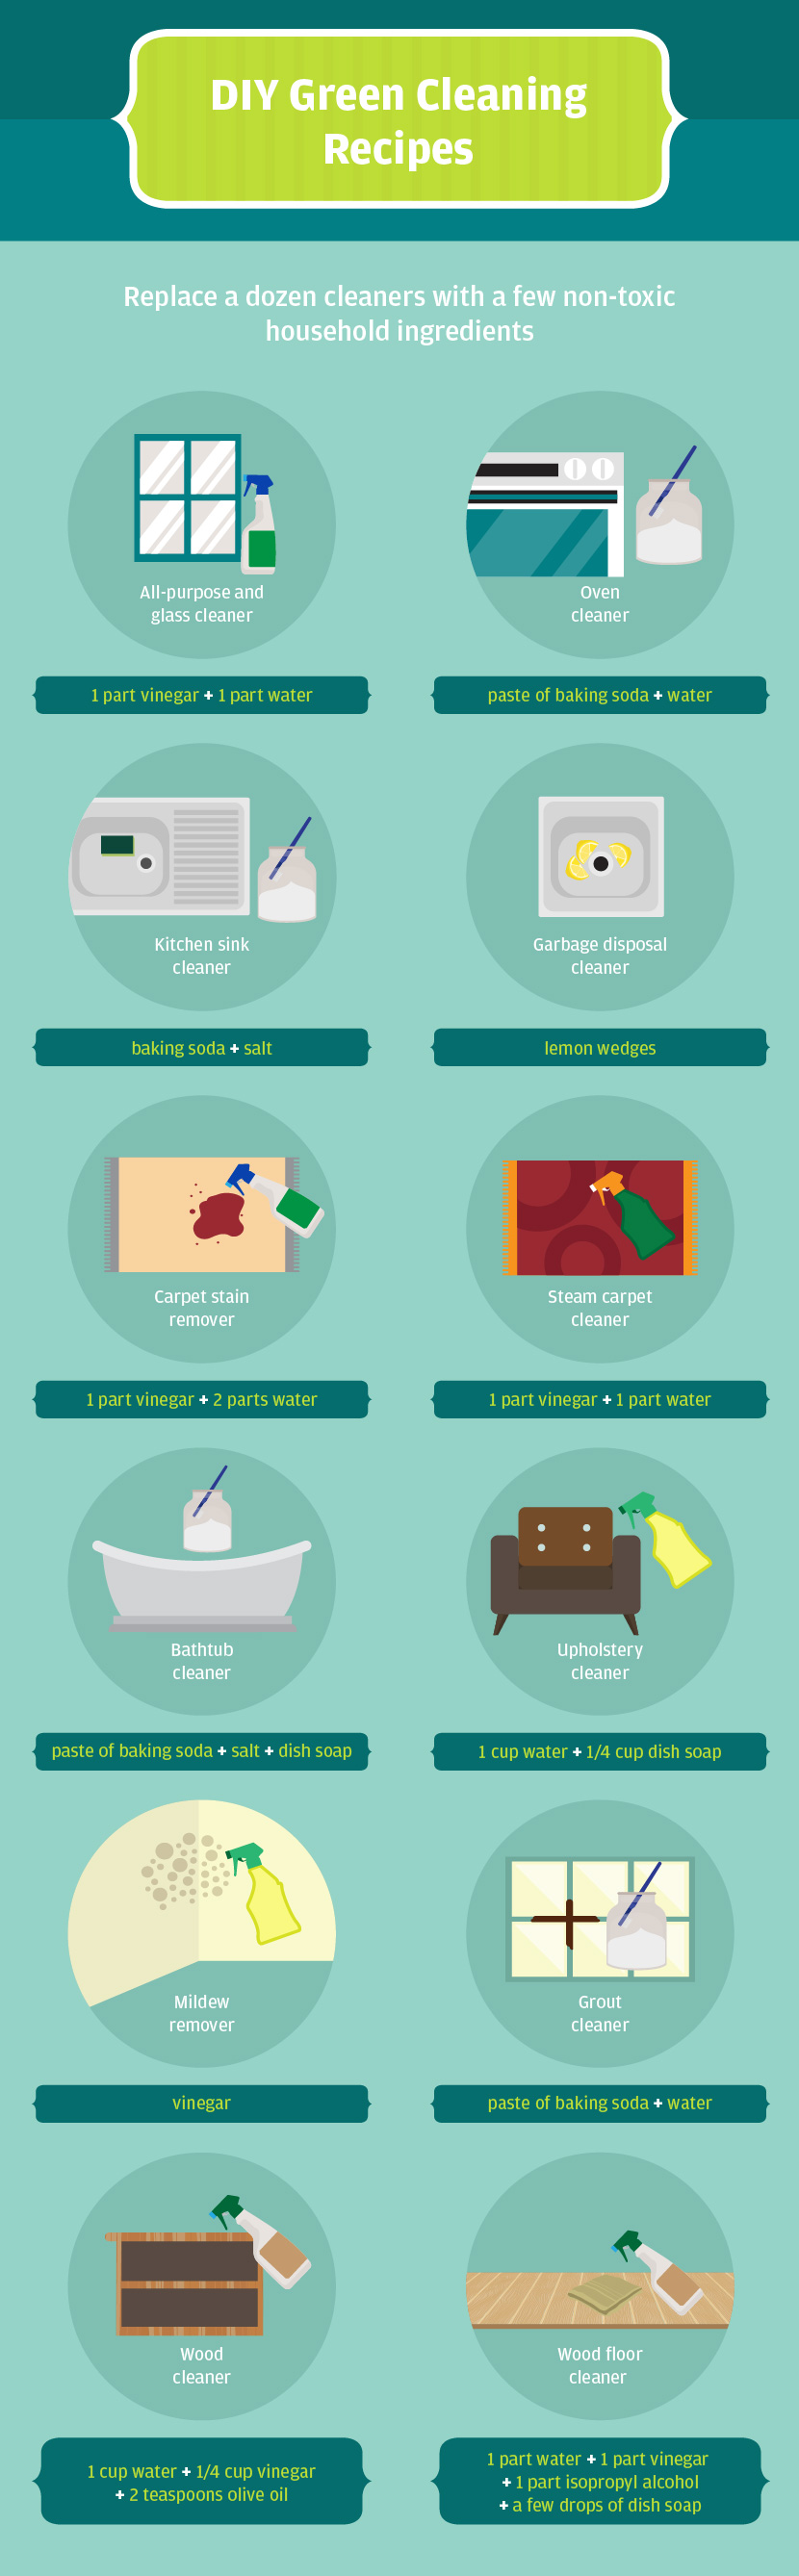 Spring Cleaning: Environmentally Friendly Cleaning Recipes